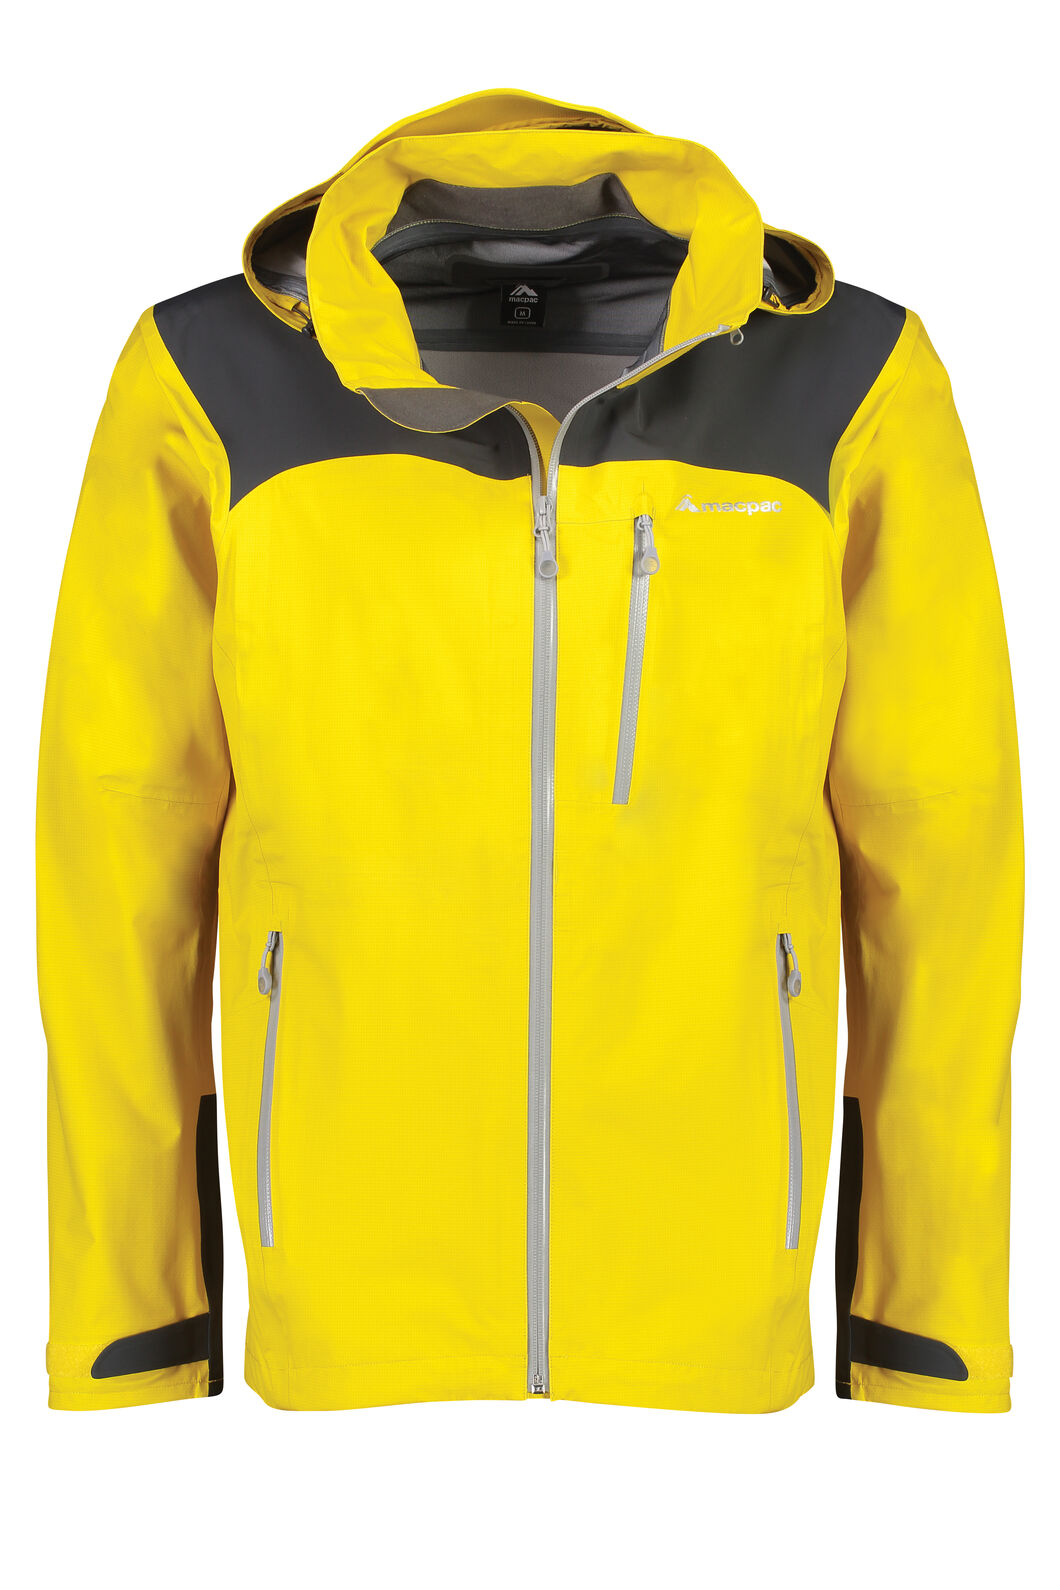 Macpac Traverse Pertex®Rain Jacket - Men's, Lemon Curry, hi-res